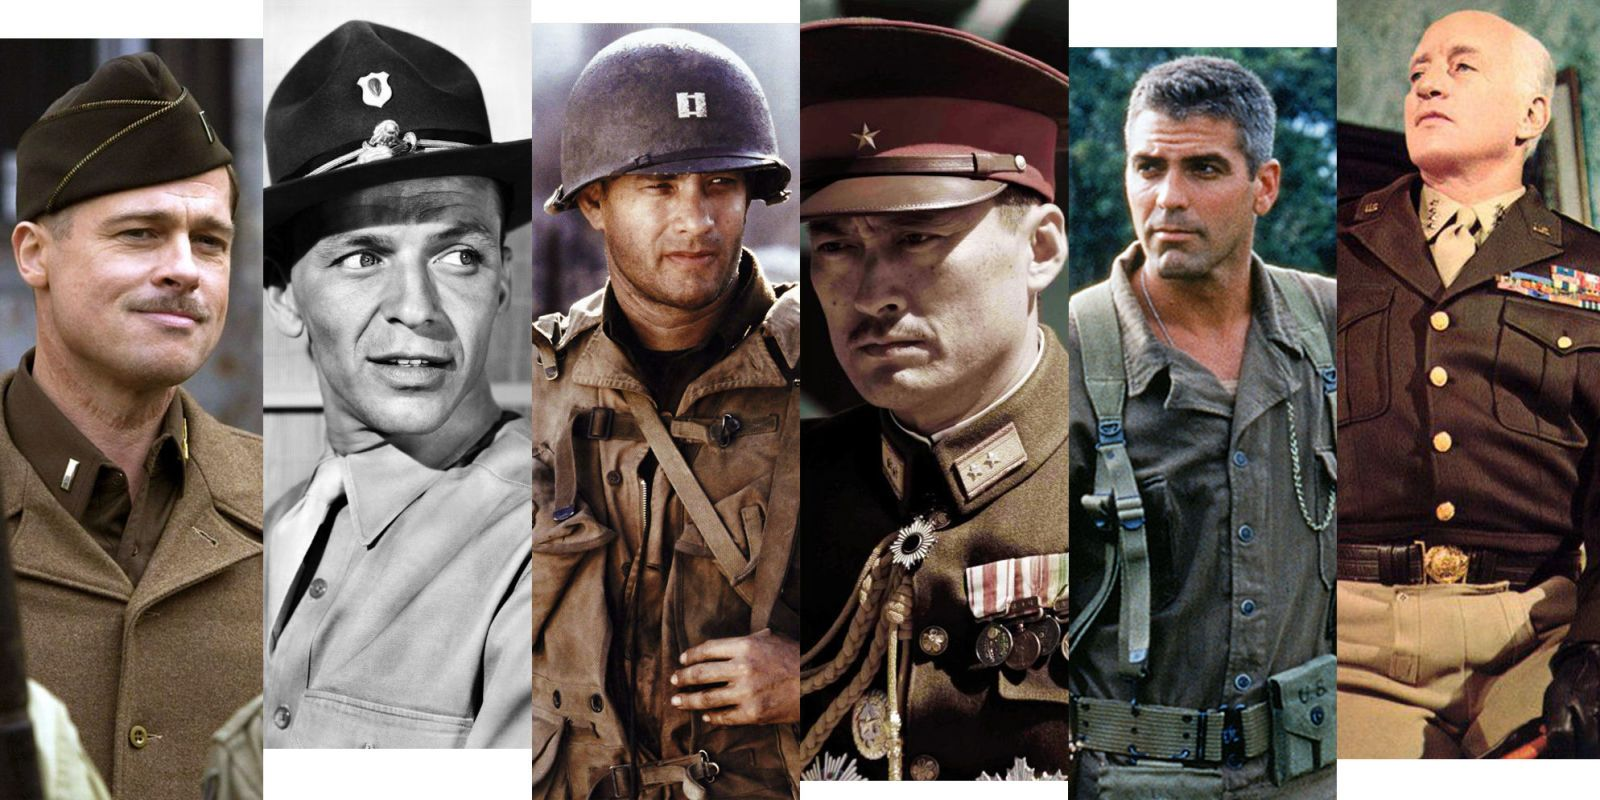 20 Best World War 2 Movies of All Time Top WW2 Films Ever Made